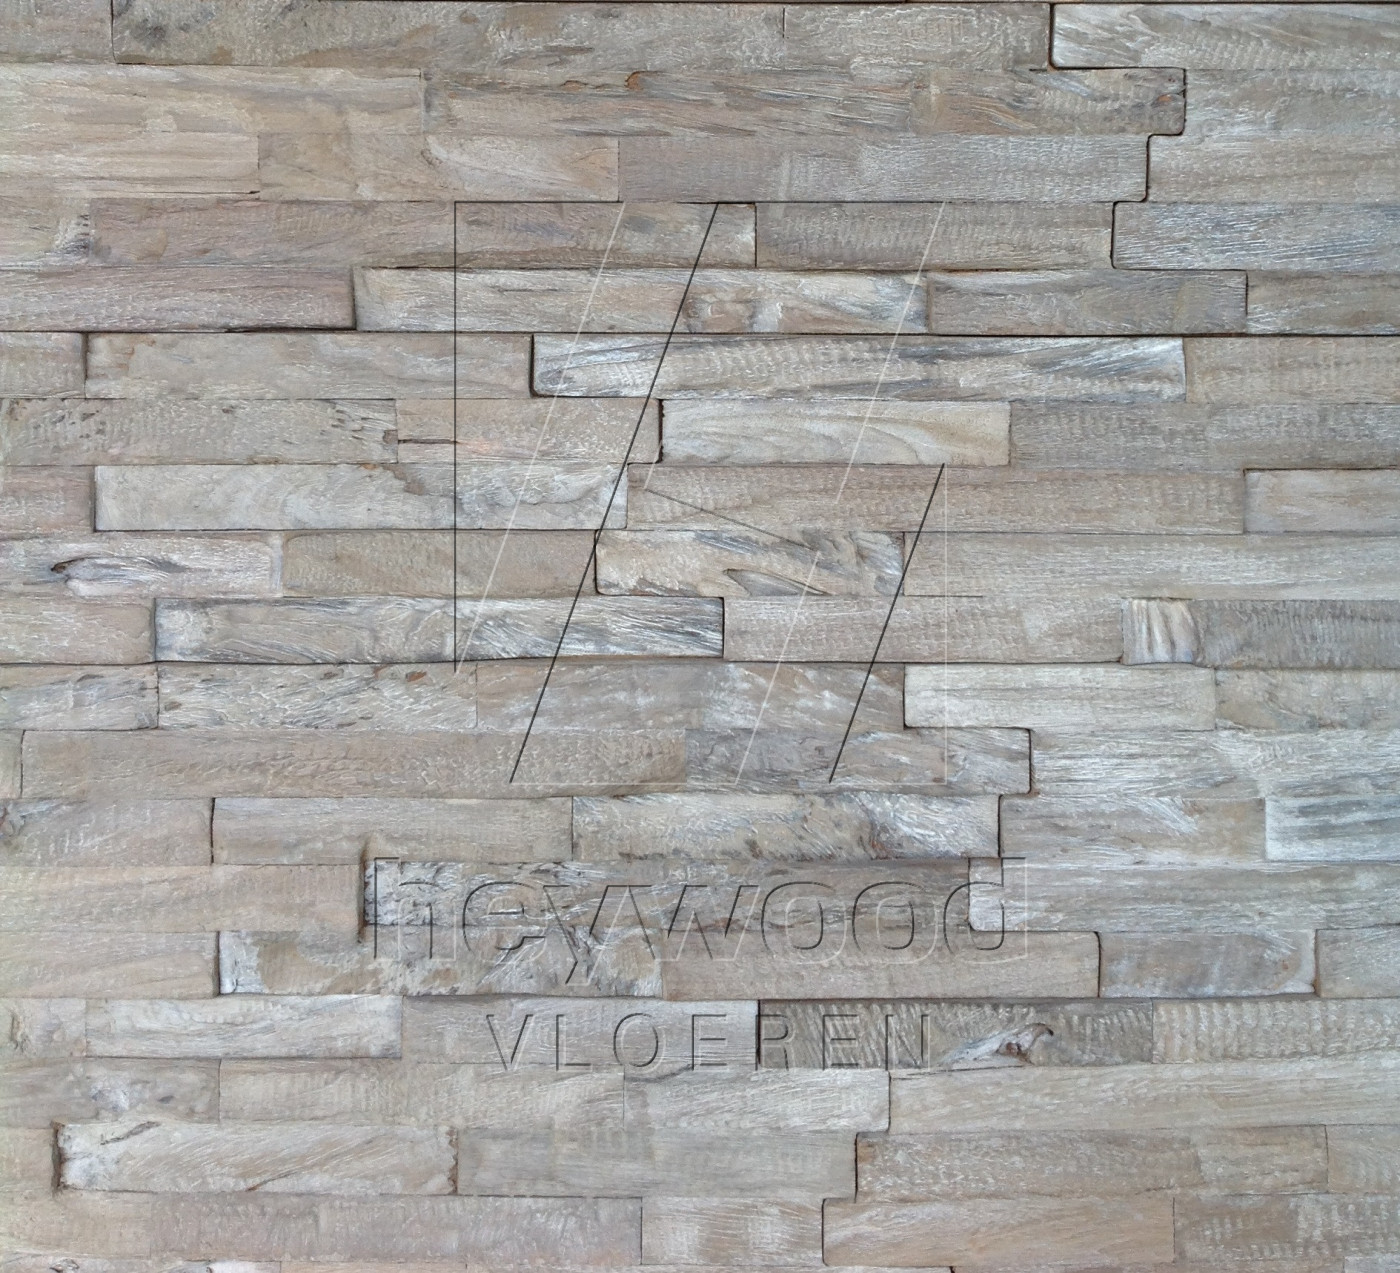 'WEATHERED' 3D Teak Wall Panel in Pattern & Panels (Outsides / Insides) of Old Reclaimed Wood